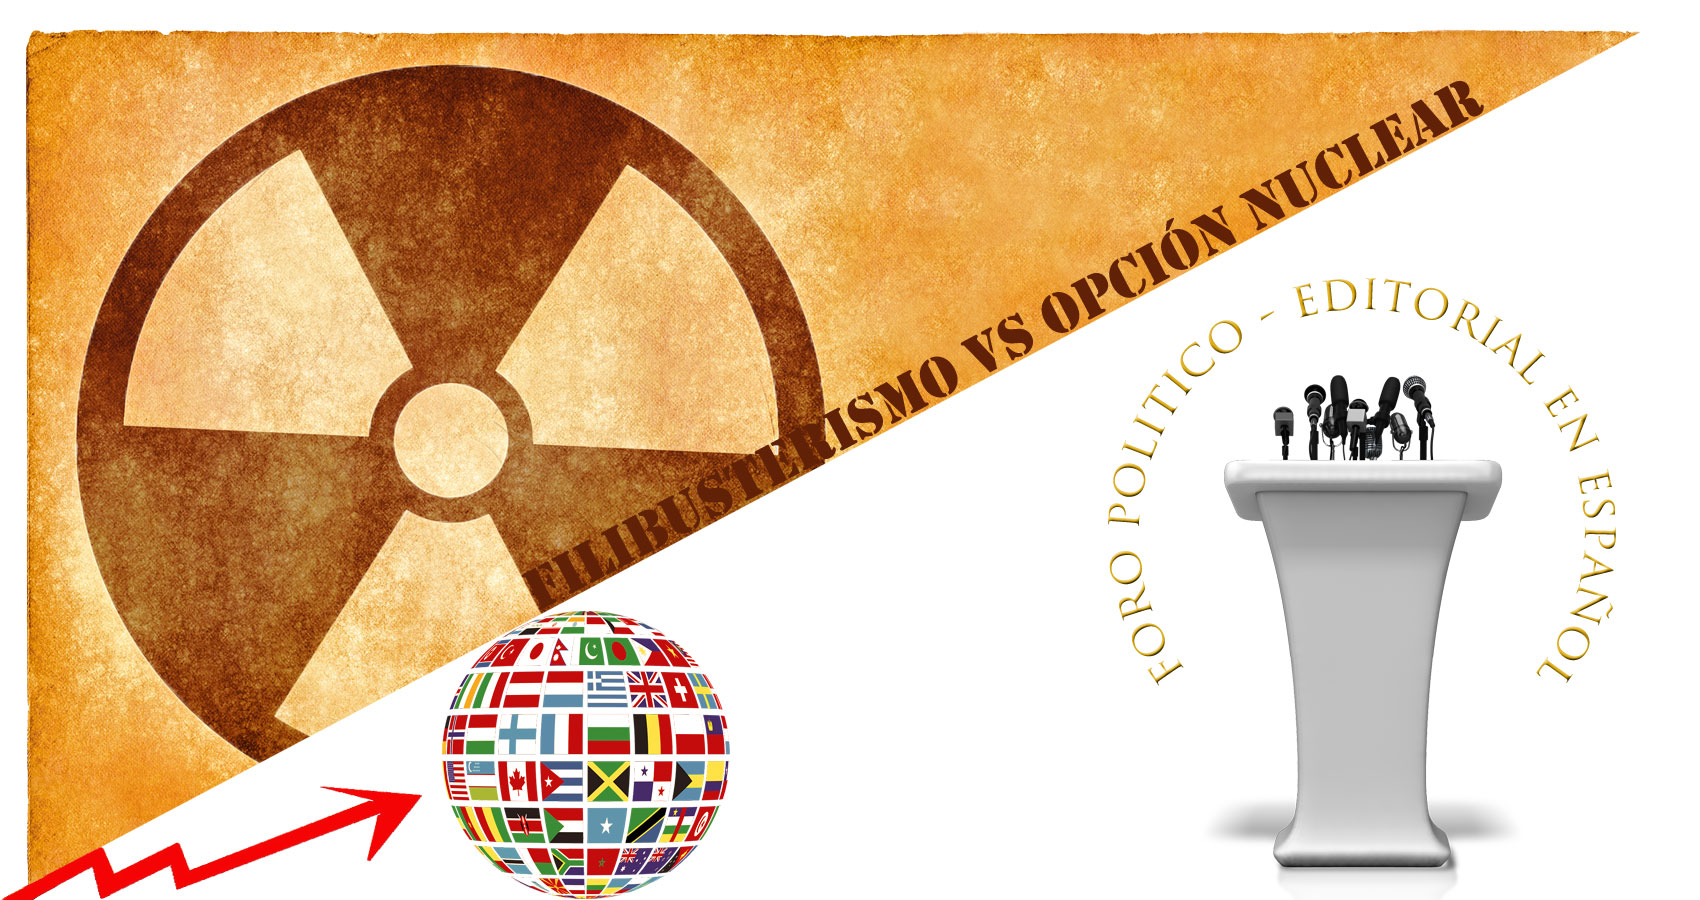 Foro Politico - Filibusterismo vs Opción Nuclear by José A. Gómez at Spillwords.com